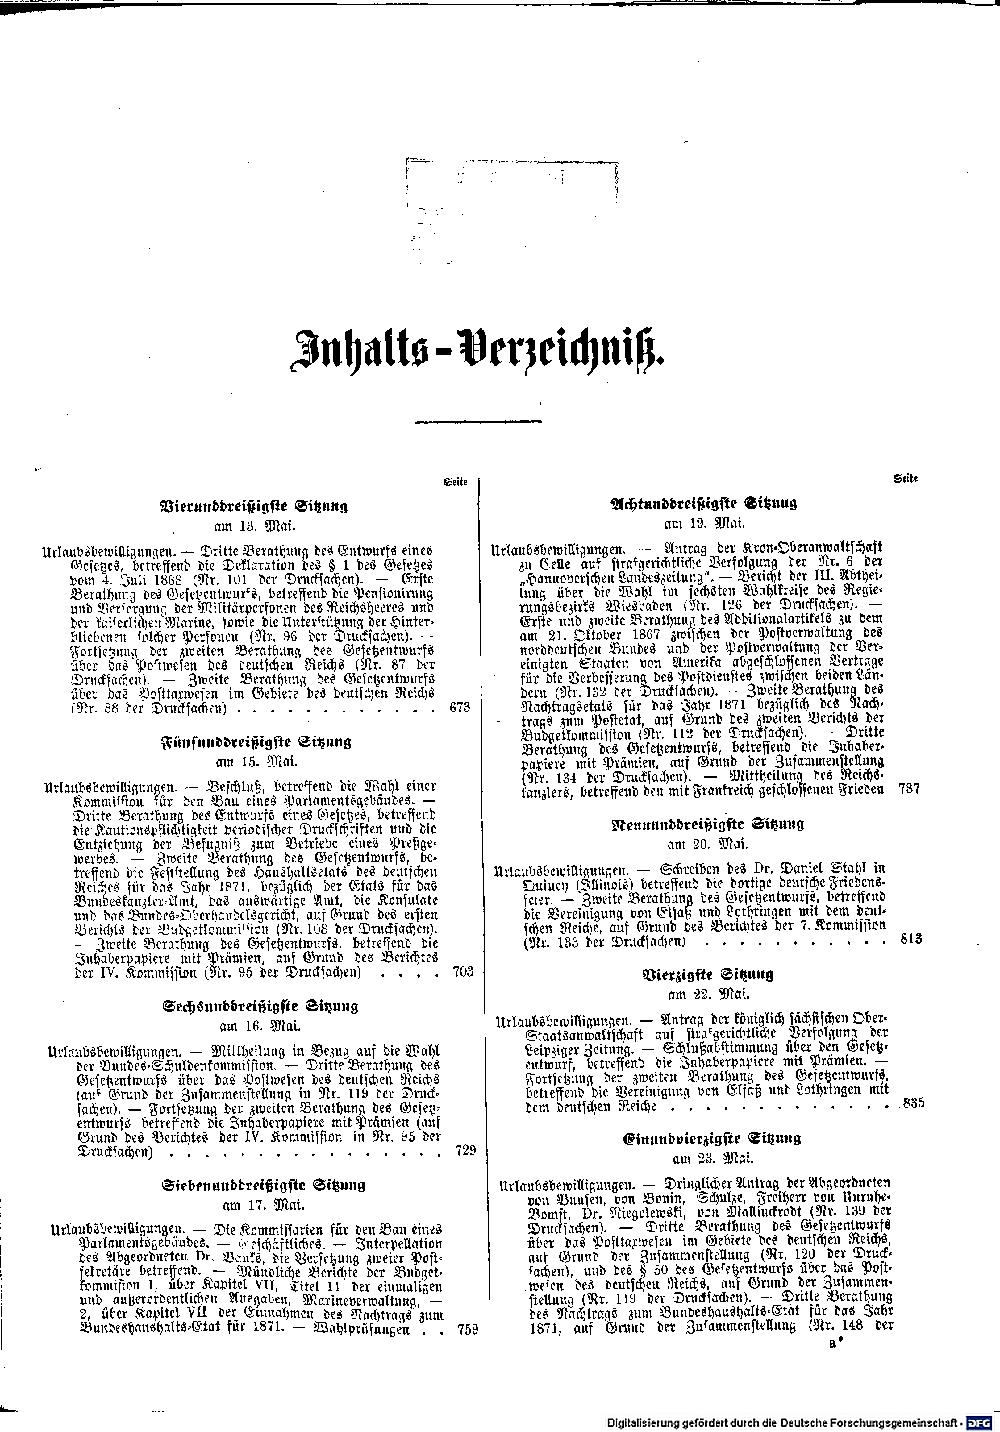 Scan of page III